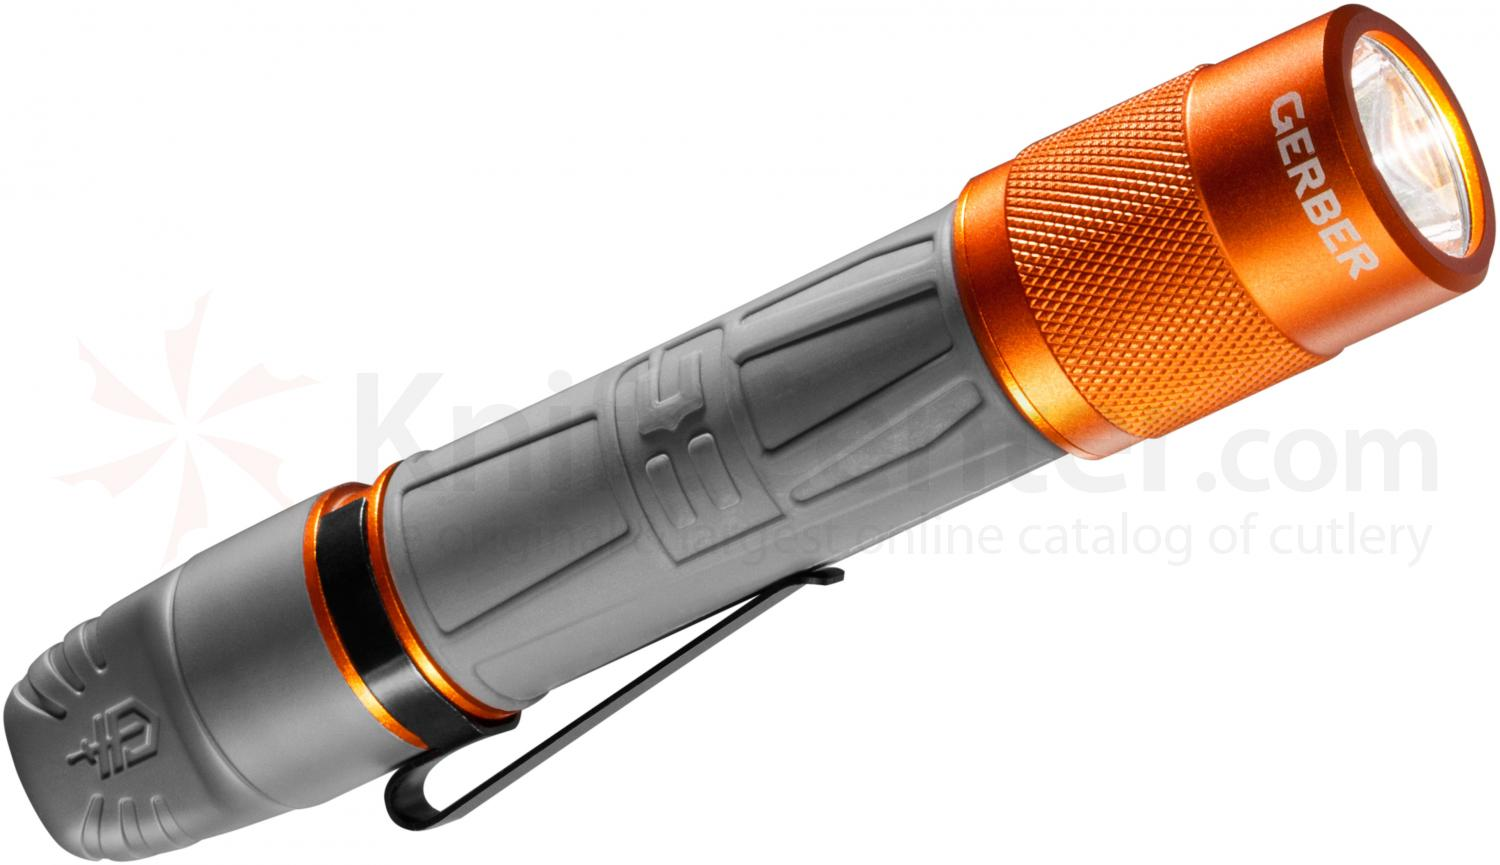 Gerber 31-001796 Bear Grylls Rechargeable Torch (LED Flashlight), 80 Max Lumens